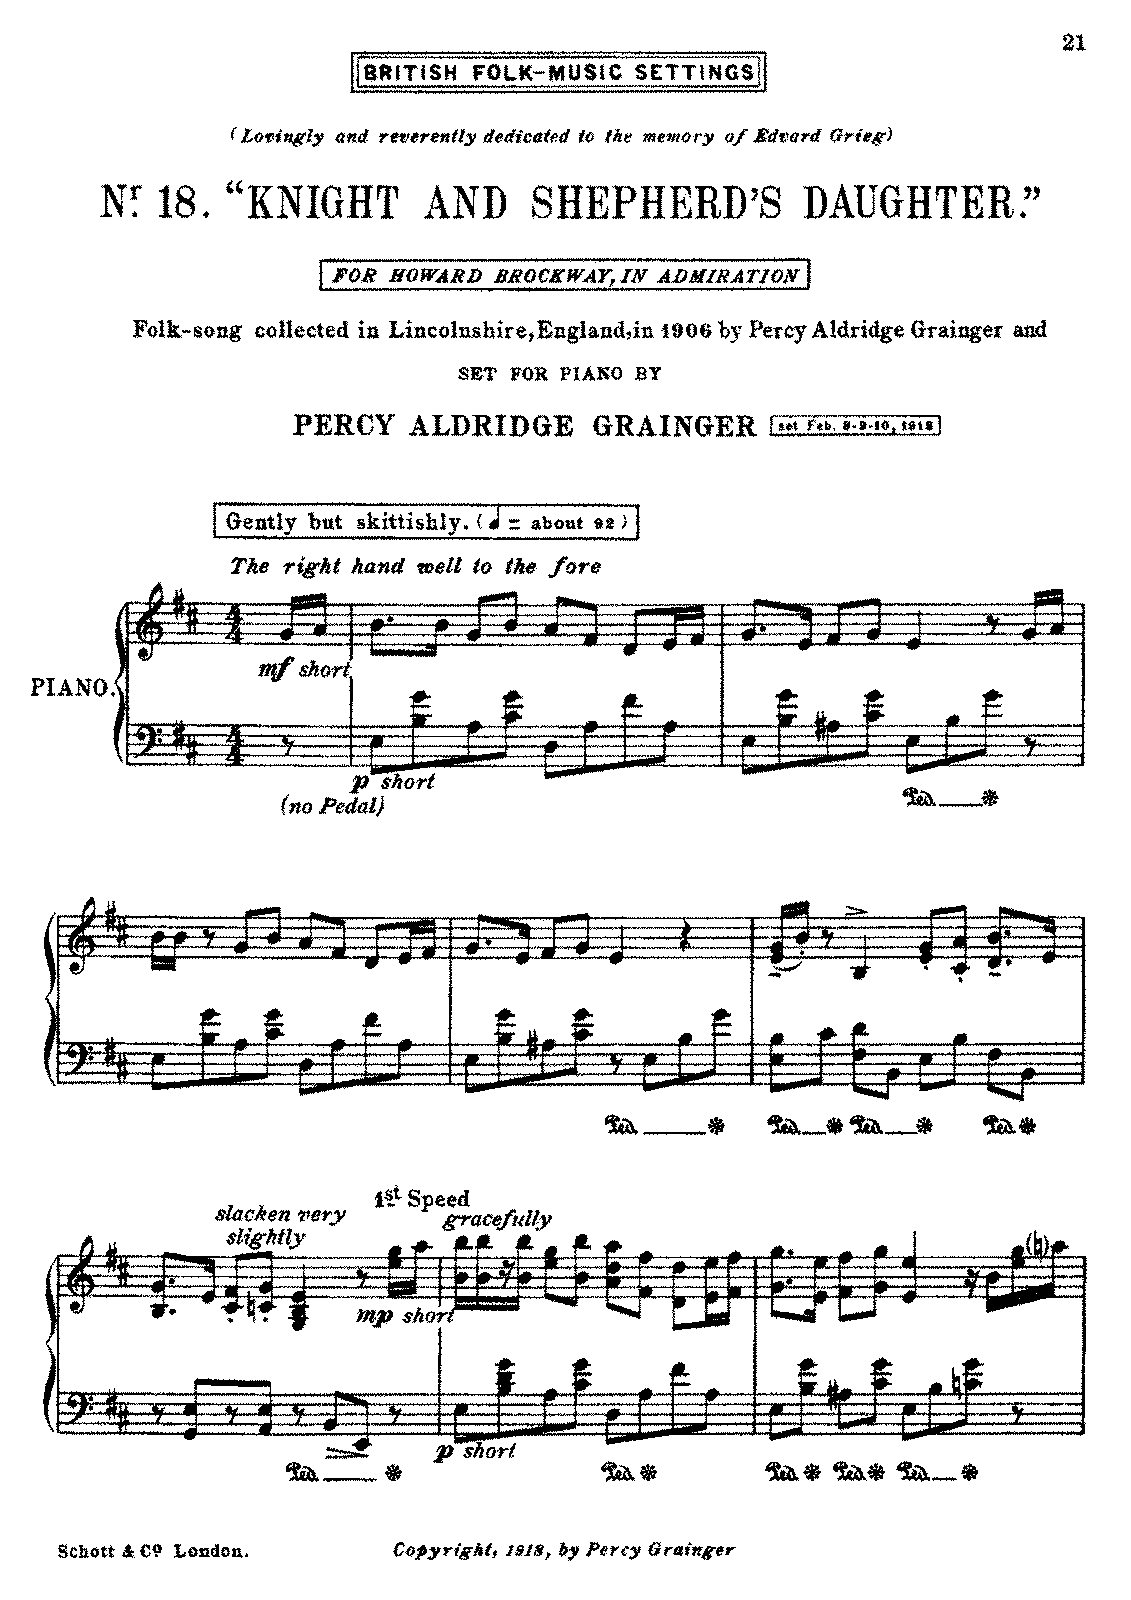 PMLP329184-Grainger - British Folk Music Settings no 18 - Knight and Shepherds Daughter - Schott Edition.pdf